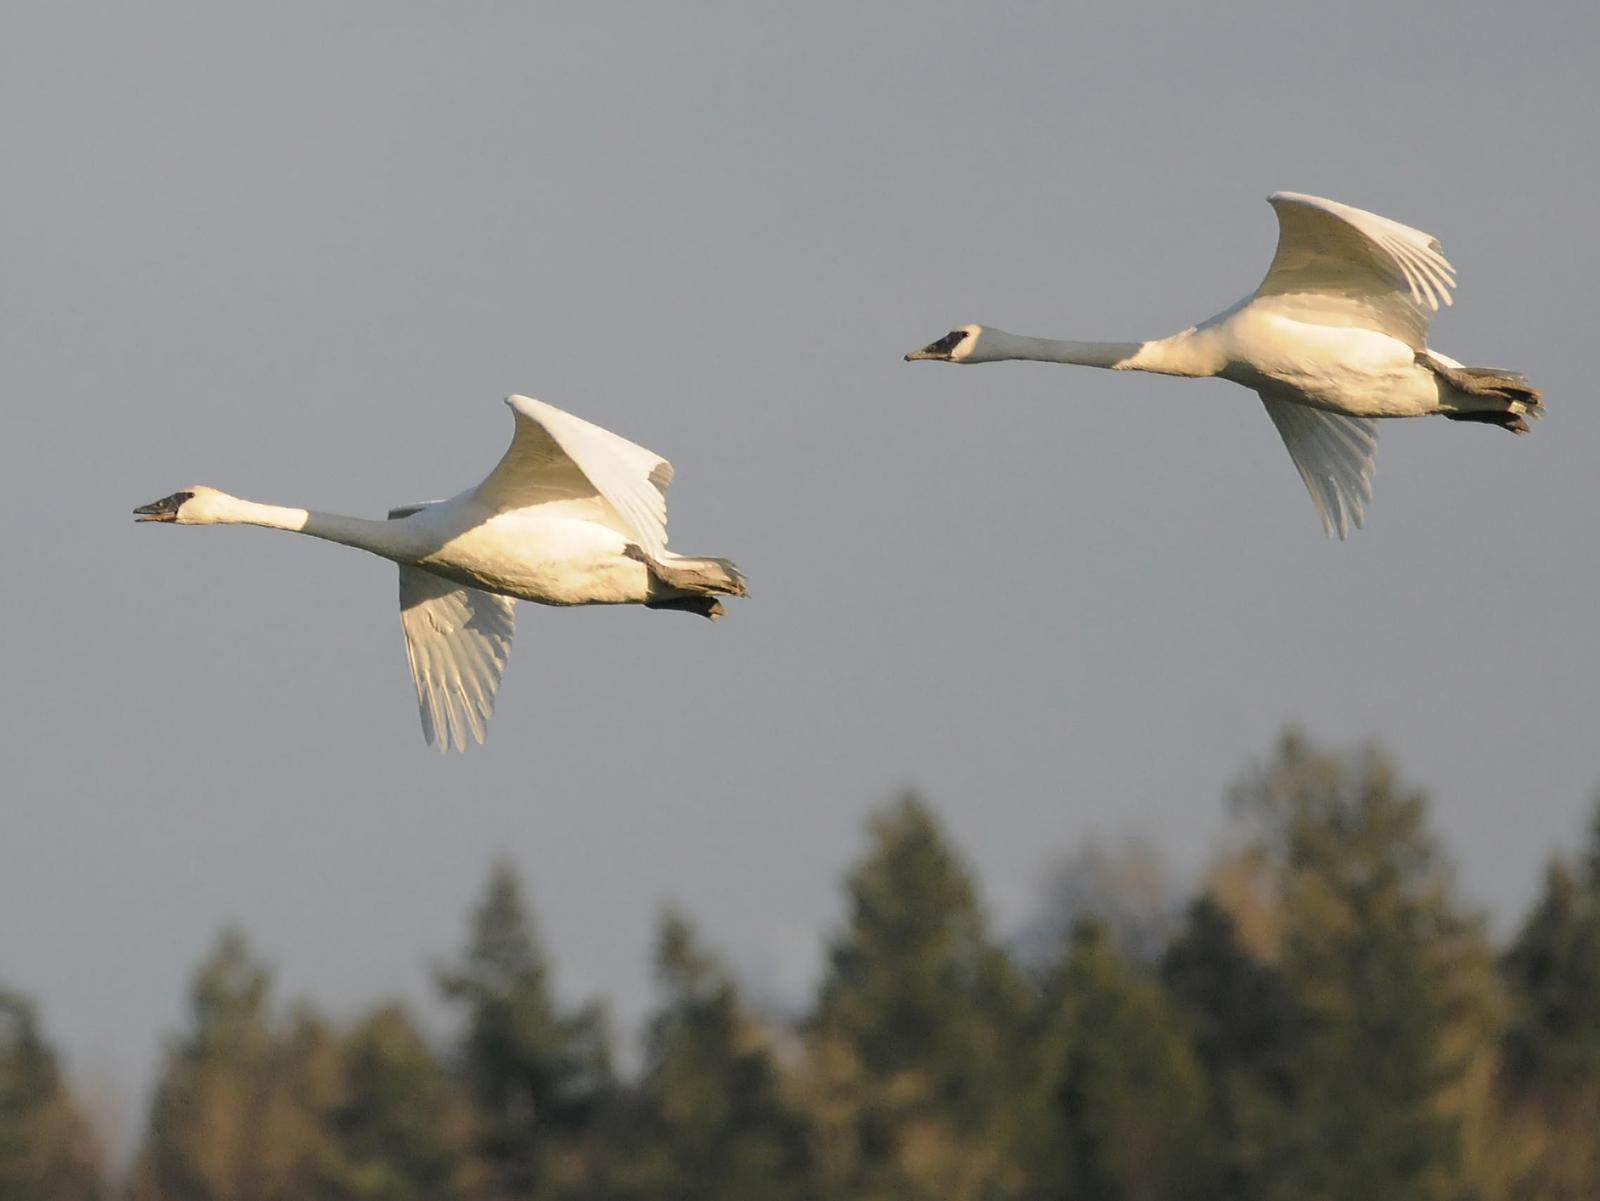 Trumpeter Swan Photo by Steven Mlodinow